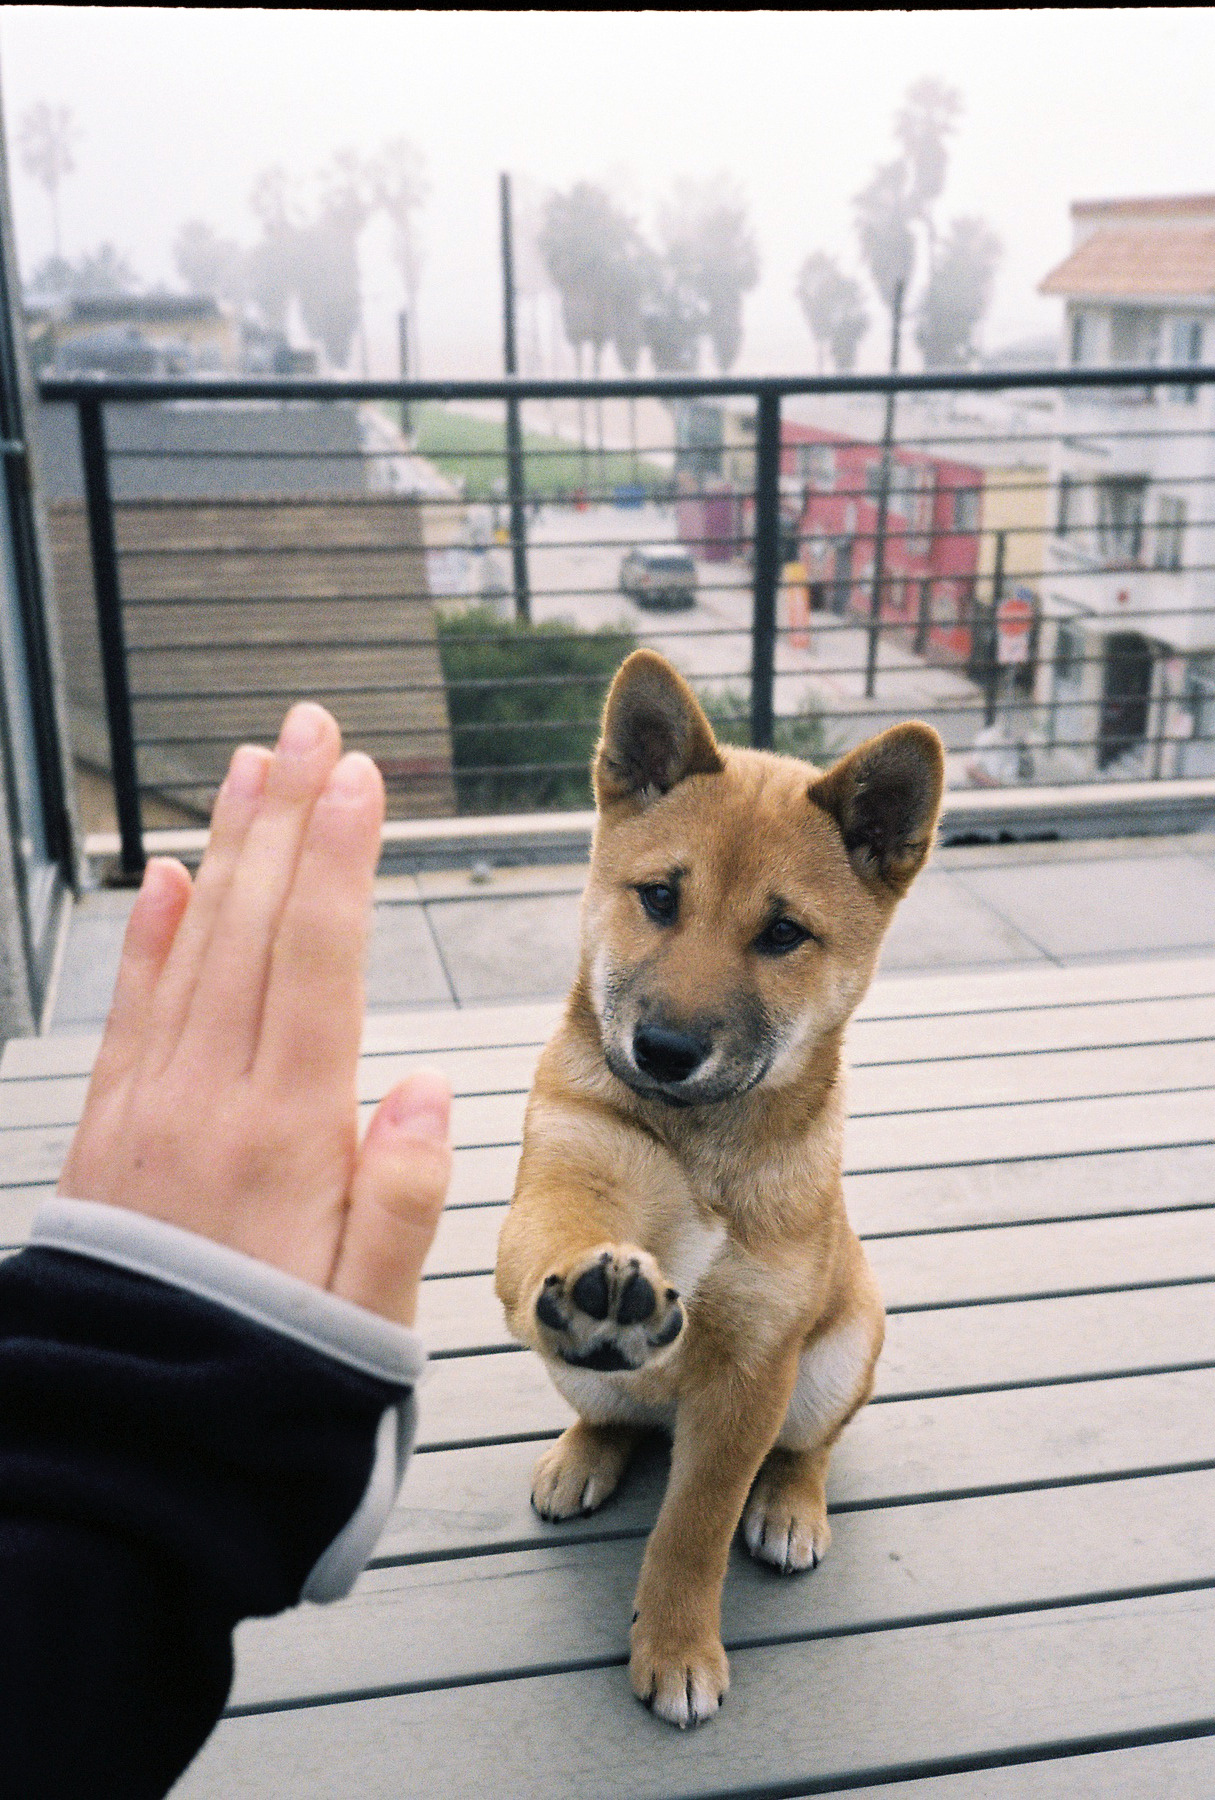 slavetopoetry:  OMG ITS A SHIBA INU! I LOVE THIS BREED! SO CUTE!